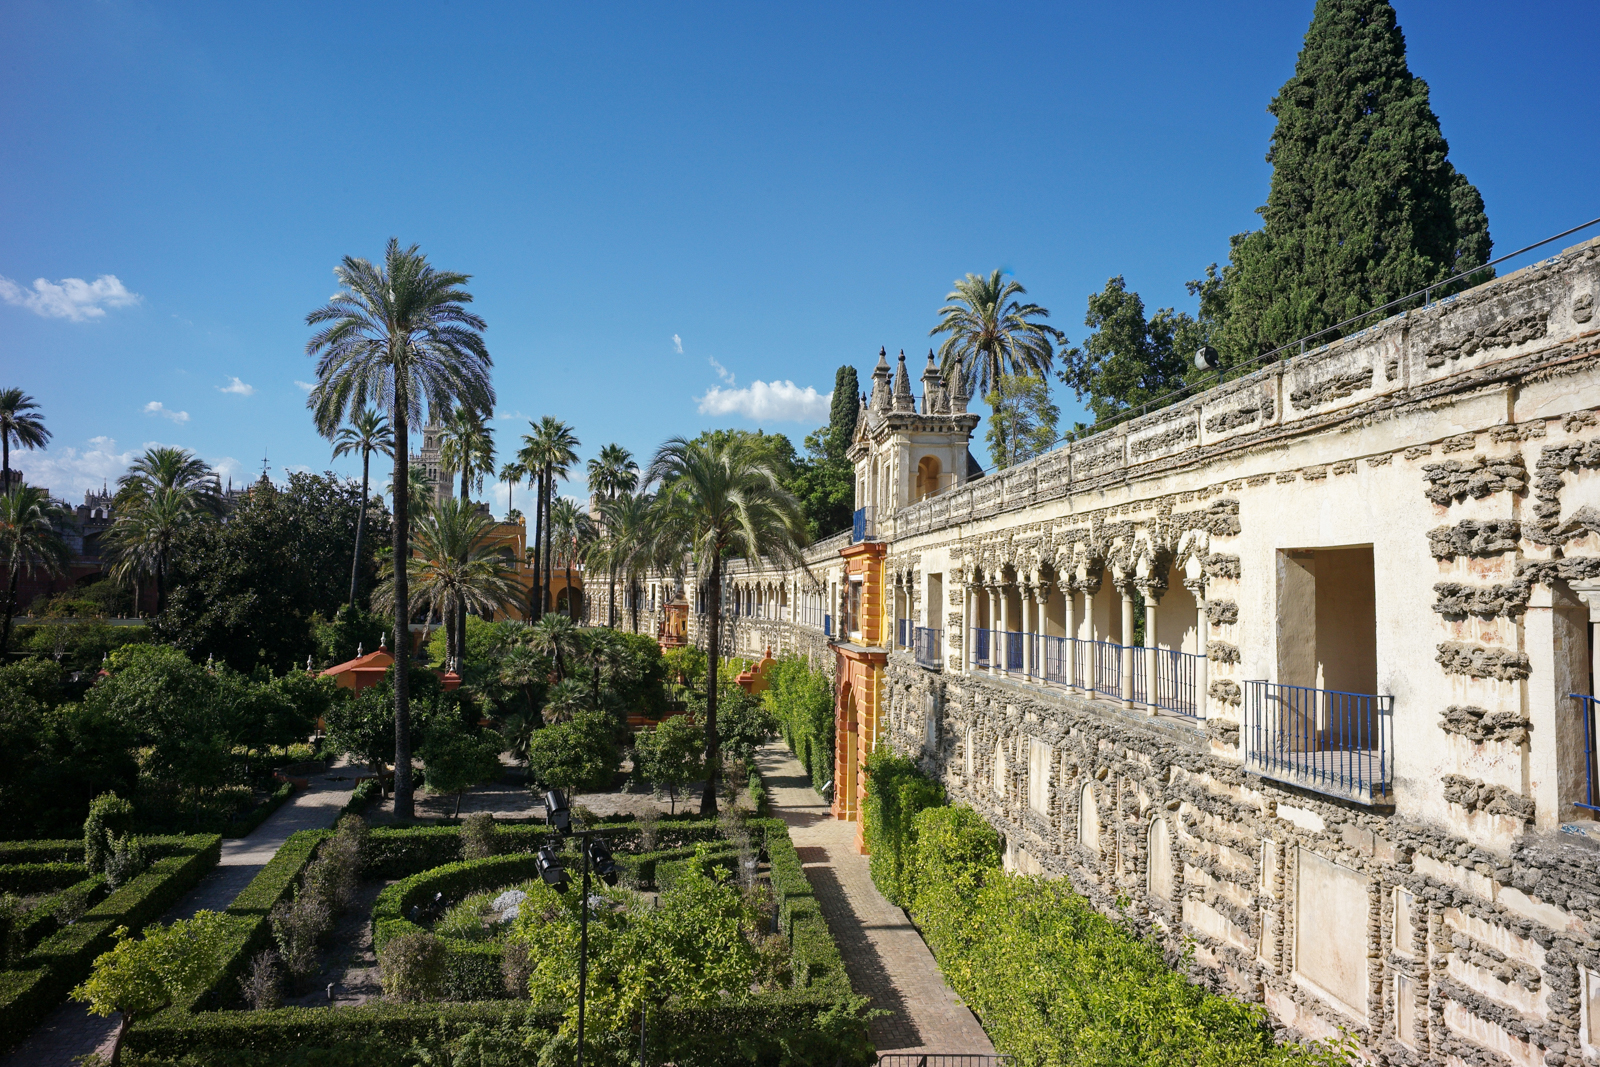 The Royal Palace Alcazar of Seville. (Photo by Andia/Universal Images Group/Getty Images)